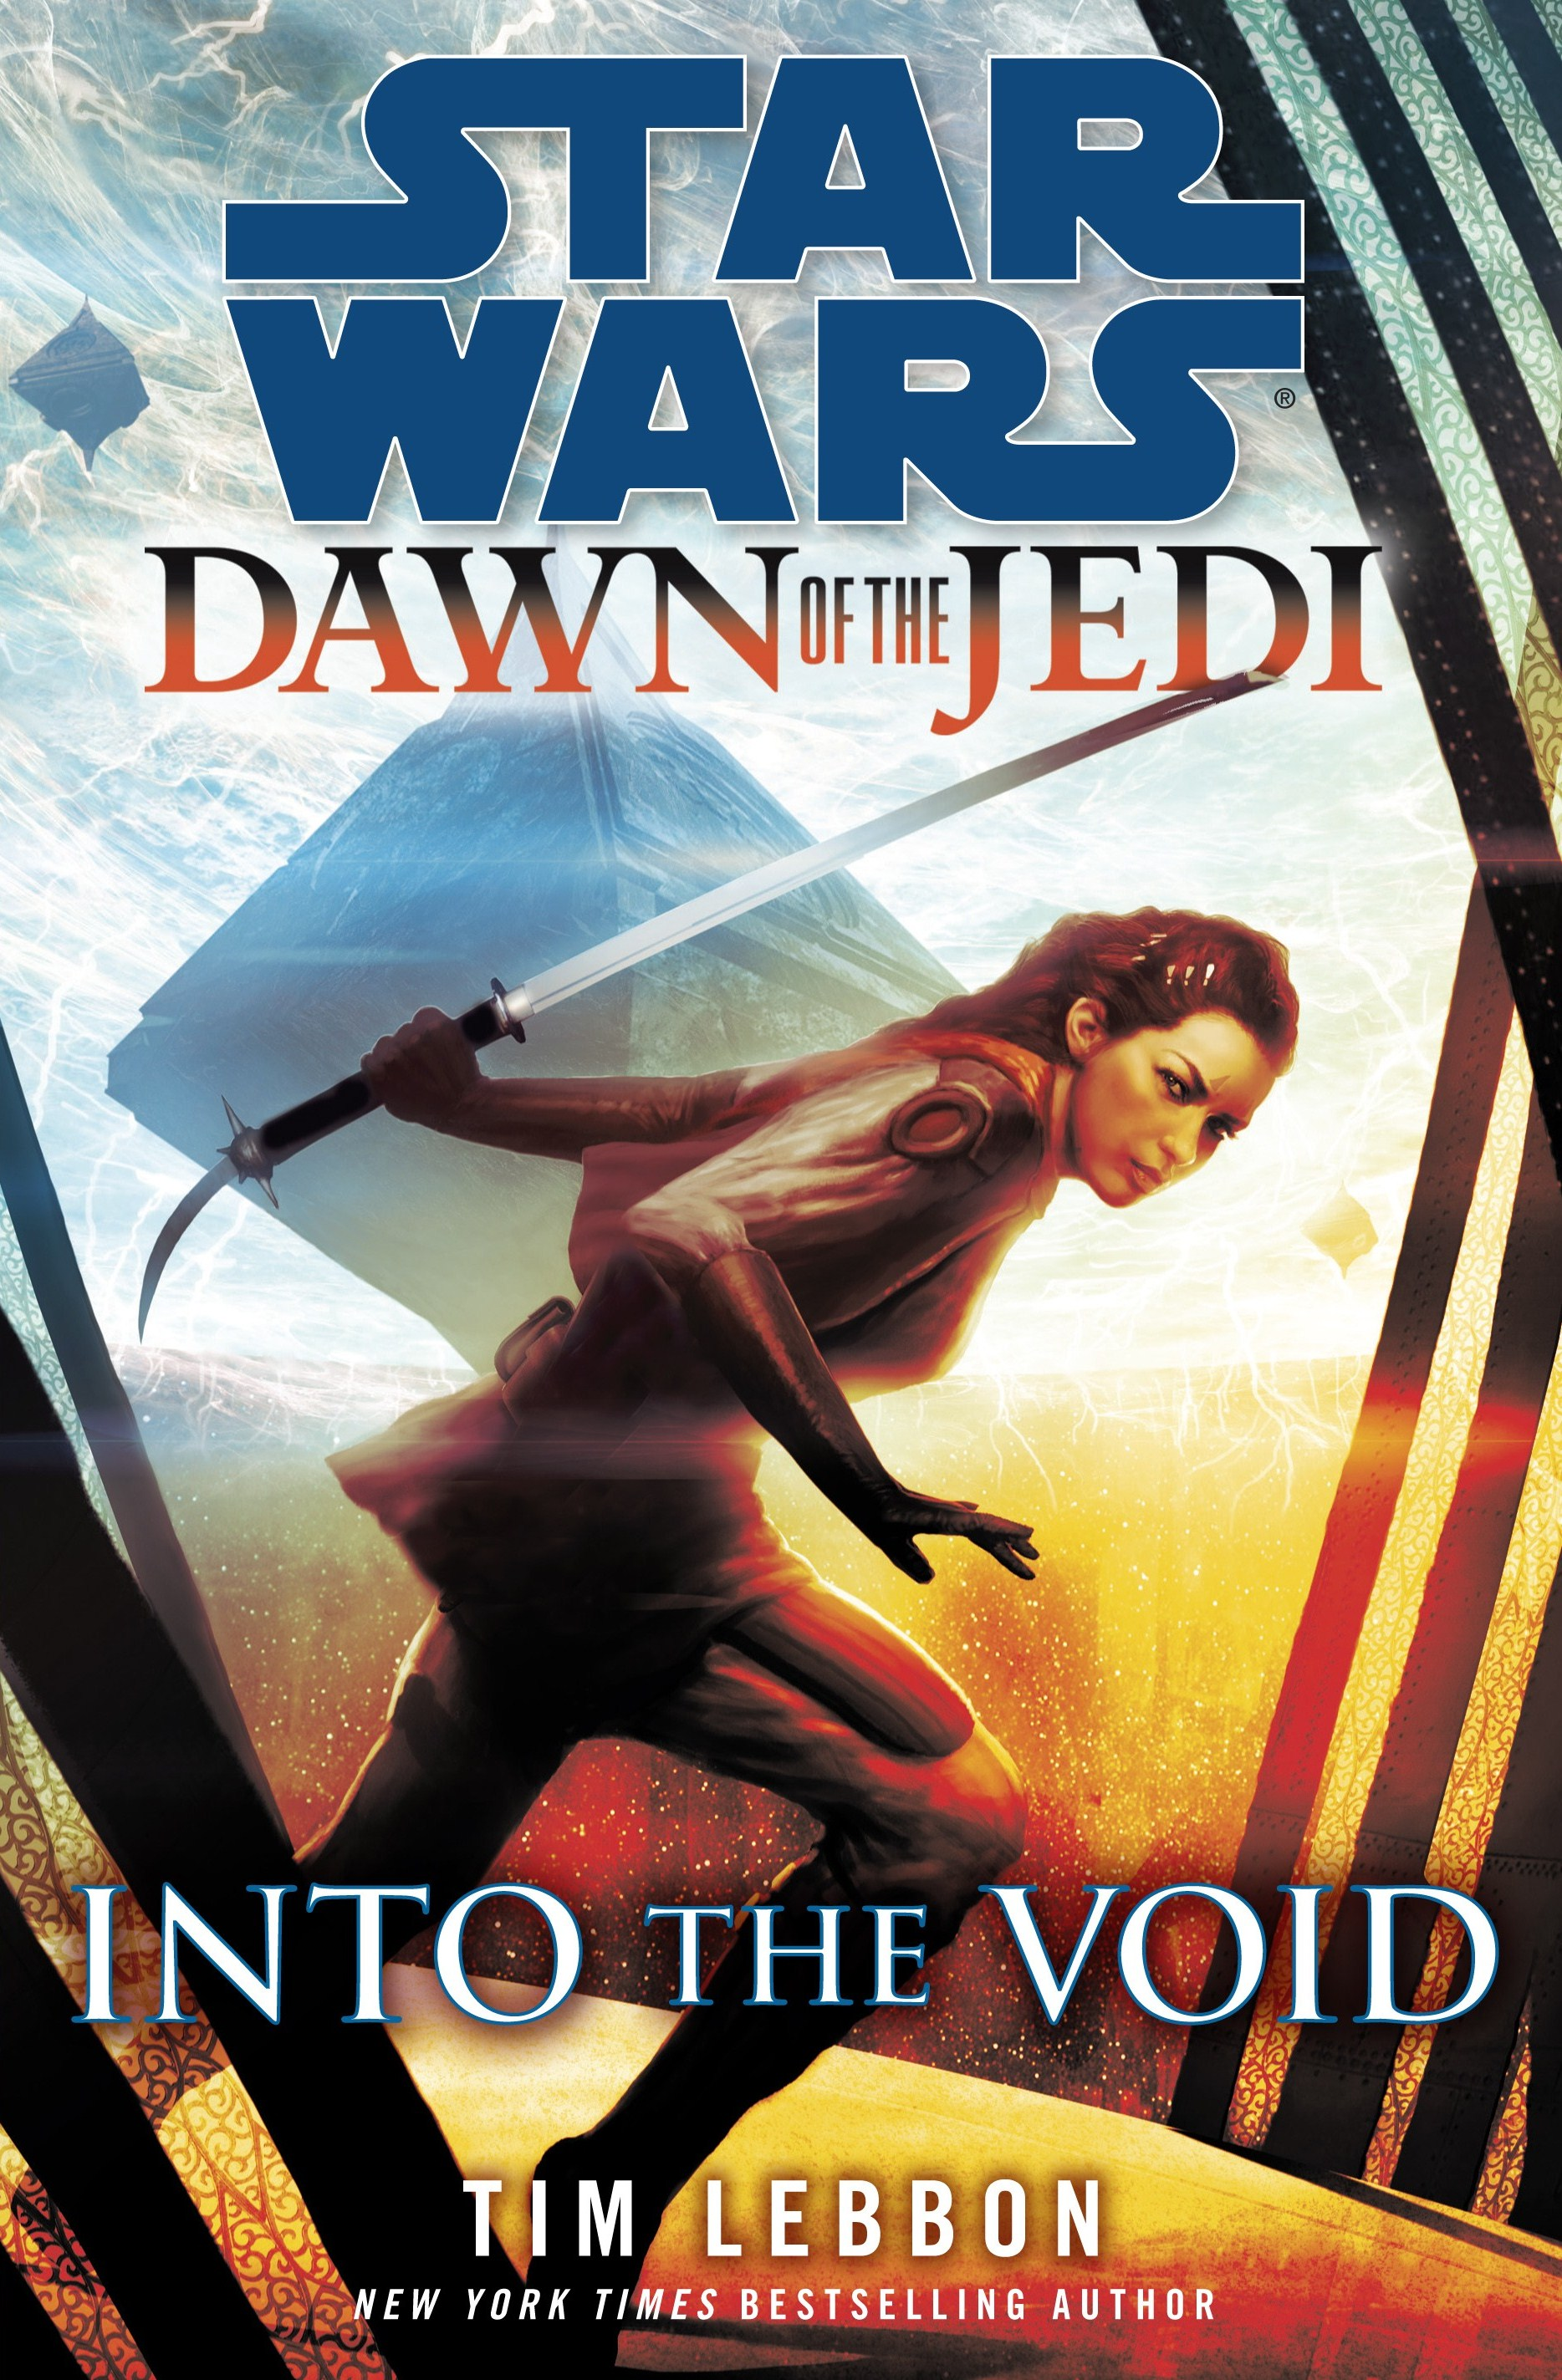 Star Wars Dawn of the Jedi: Into the Void